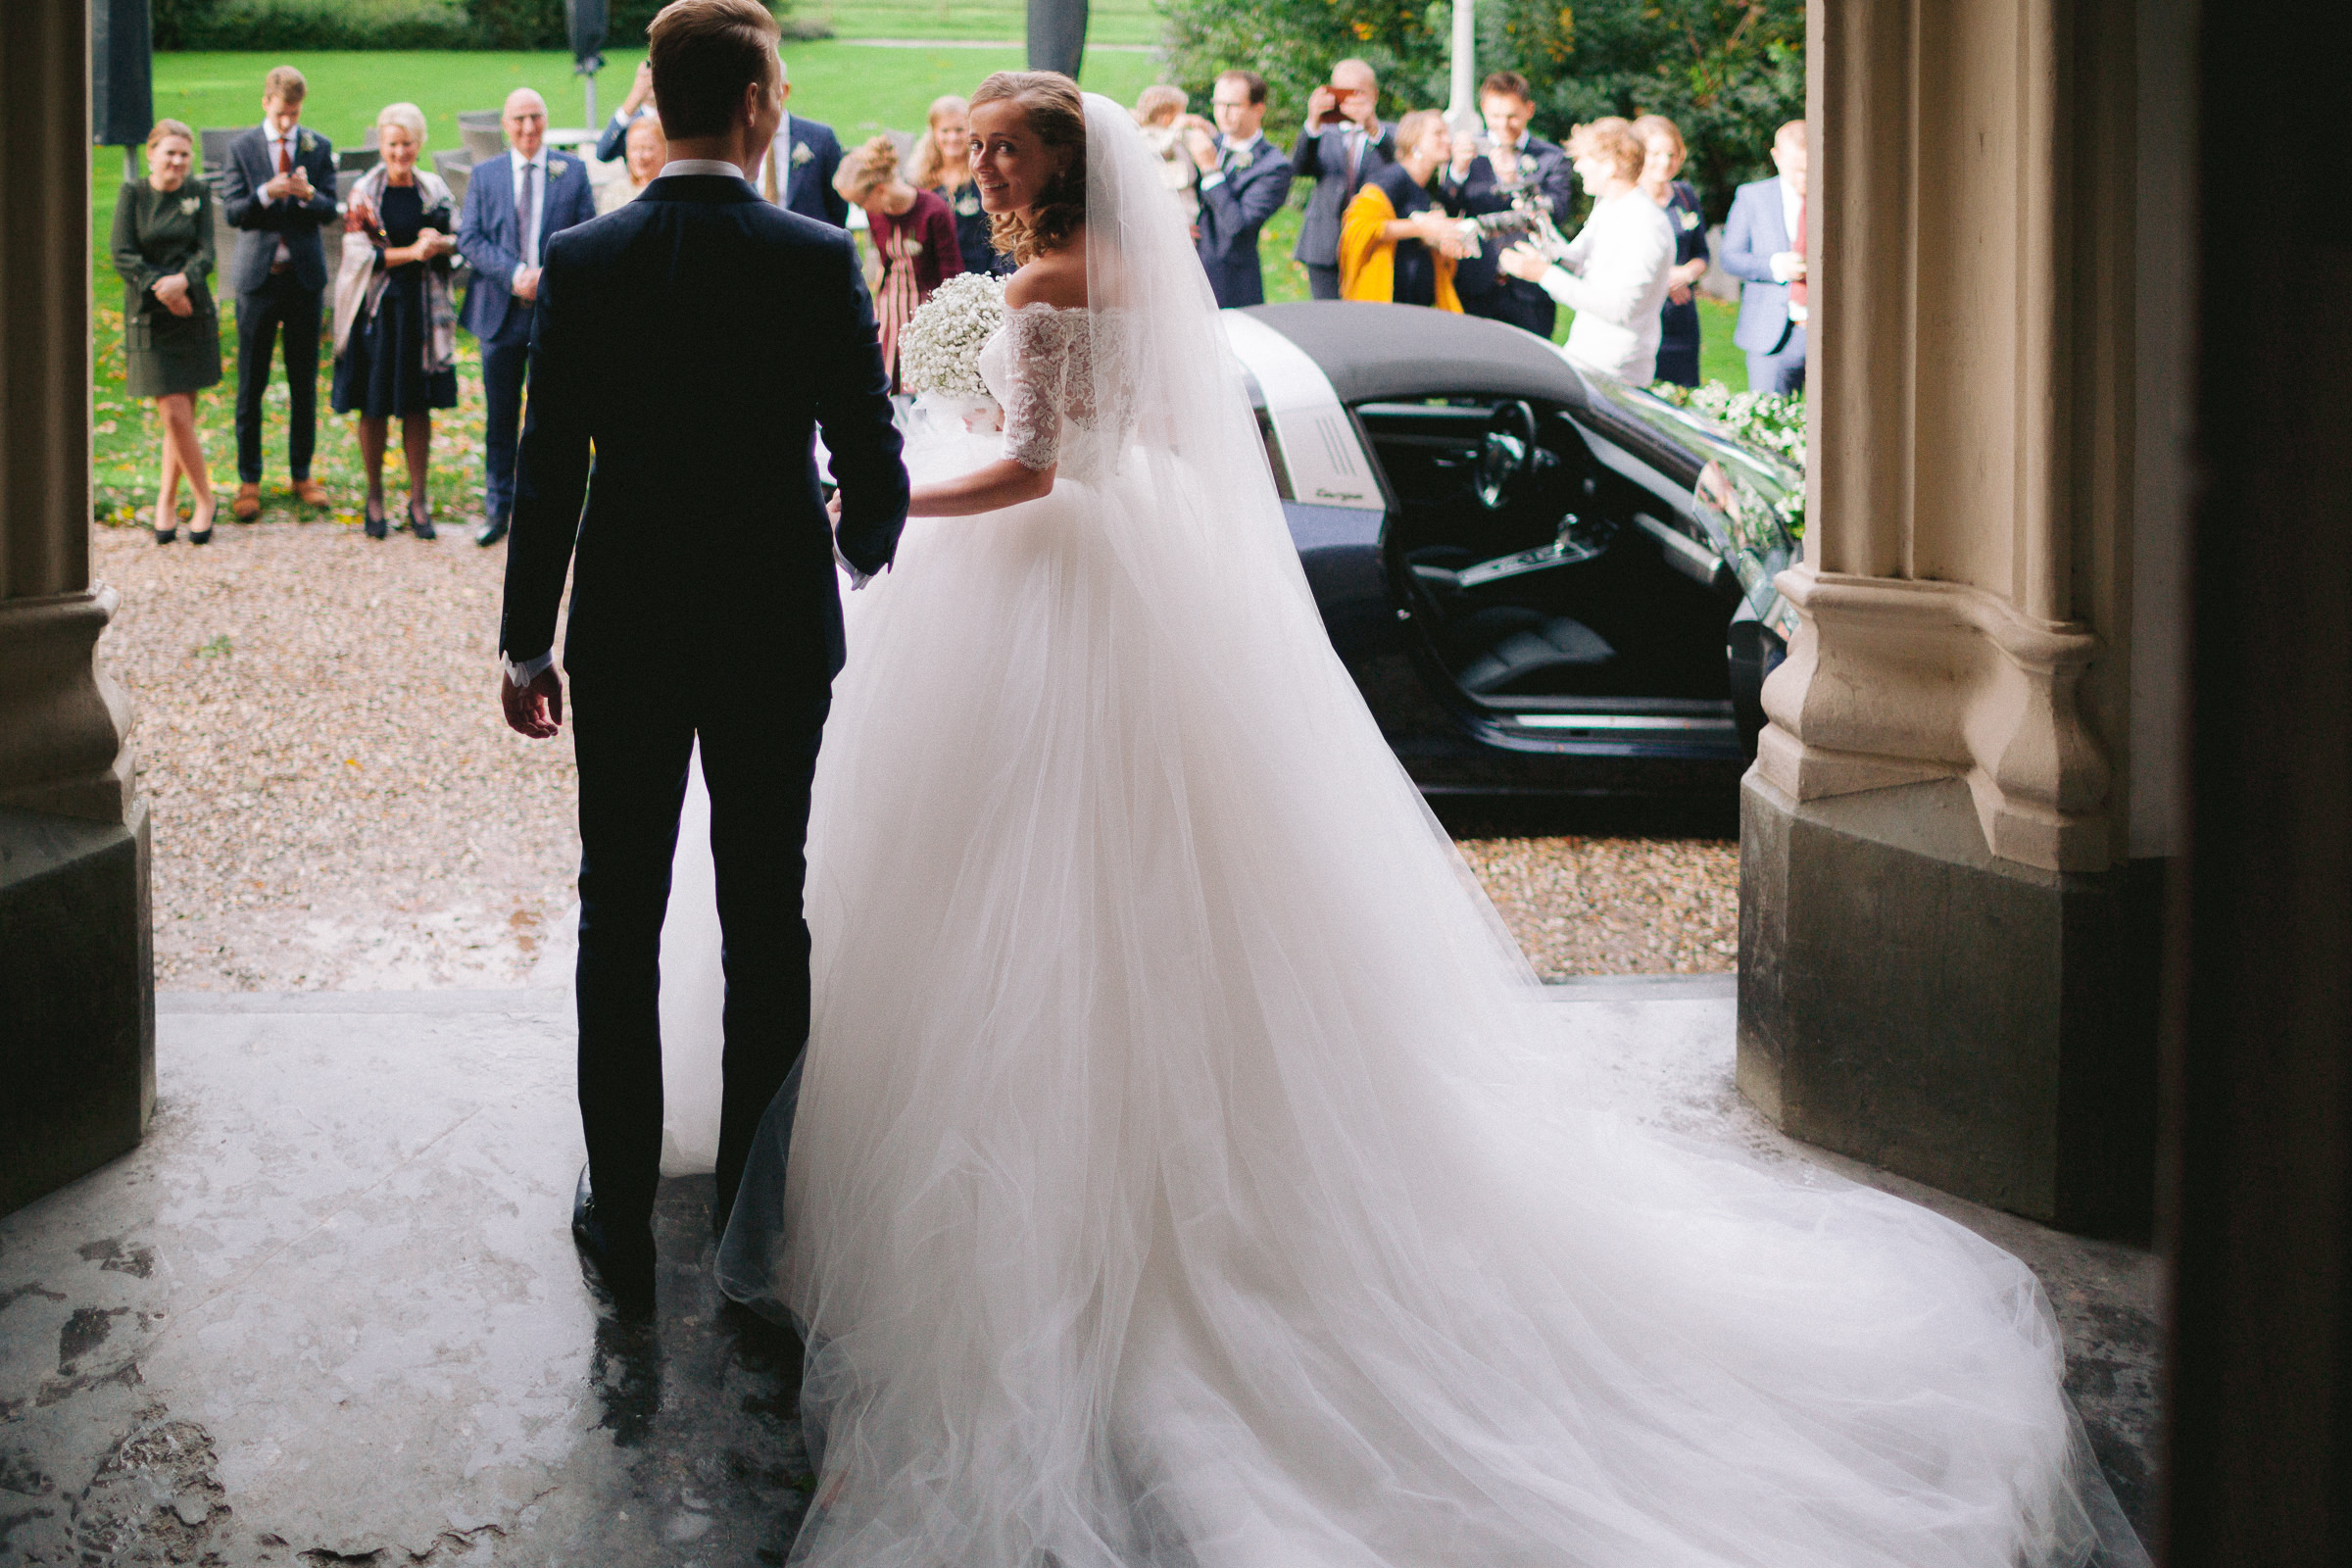 Groom exits to limo with bride in luxury gown - photo by Peter van der Lingen Wedding Photography